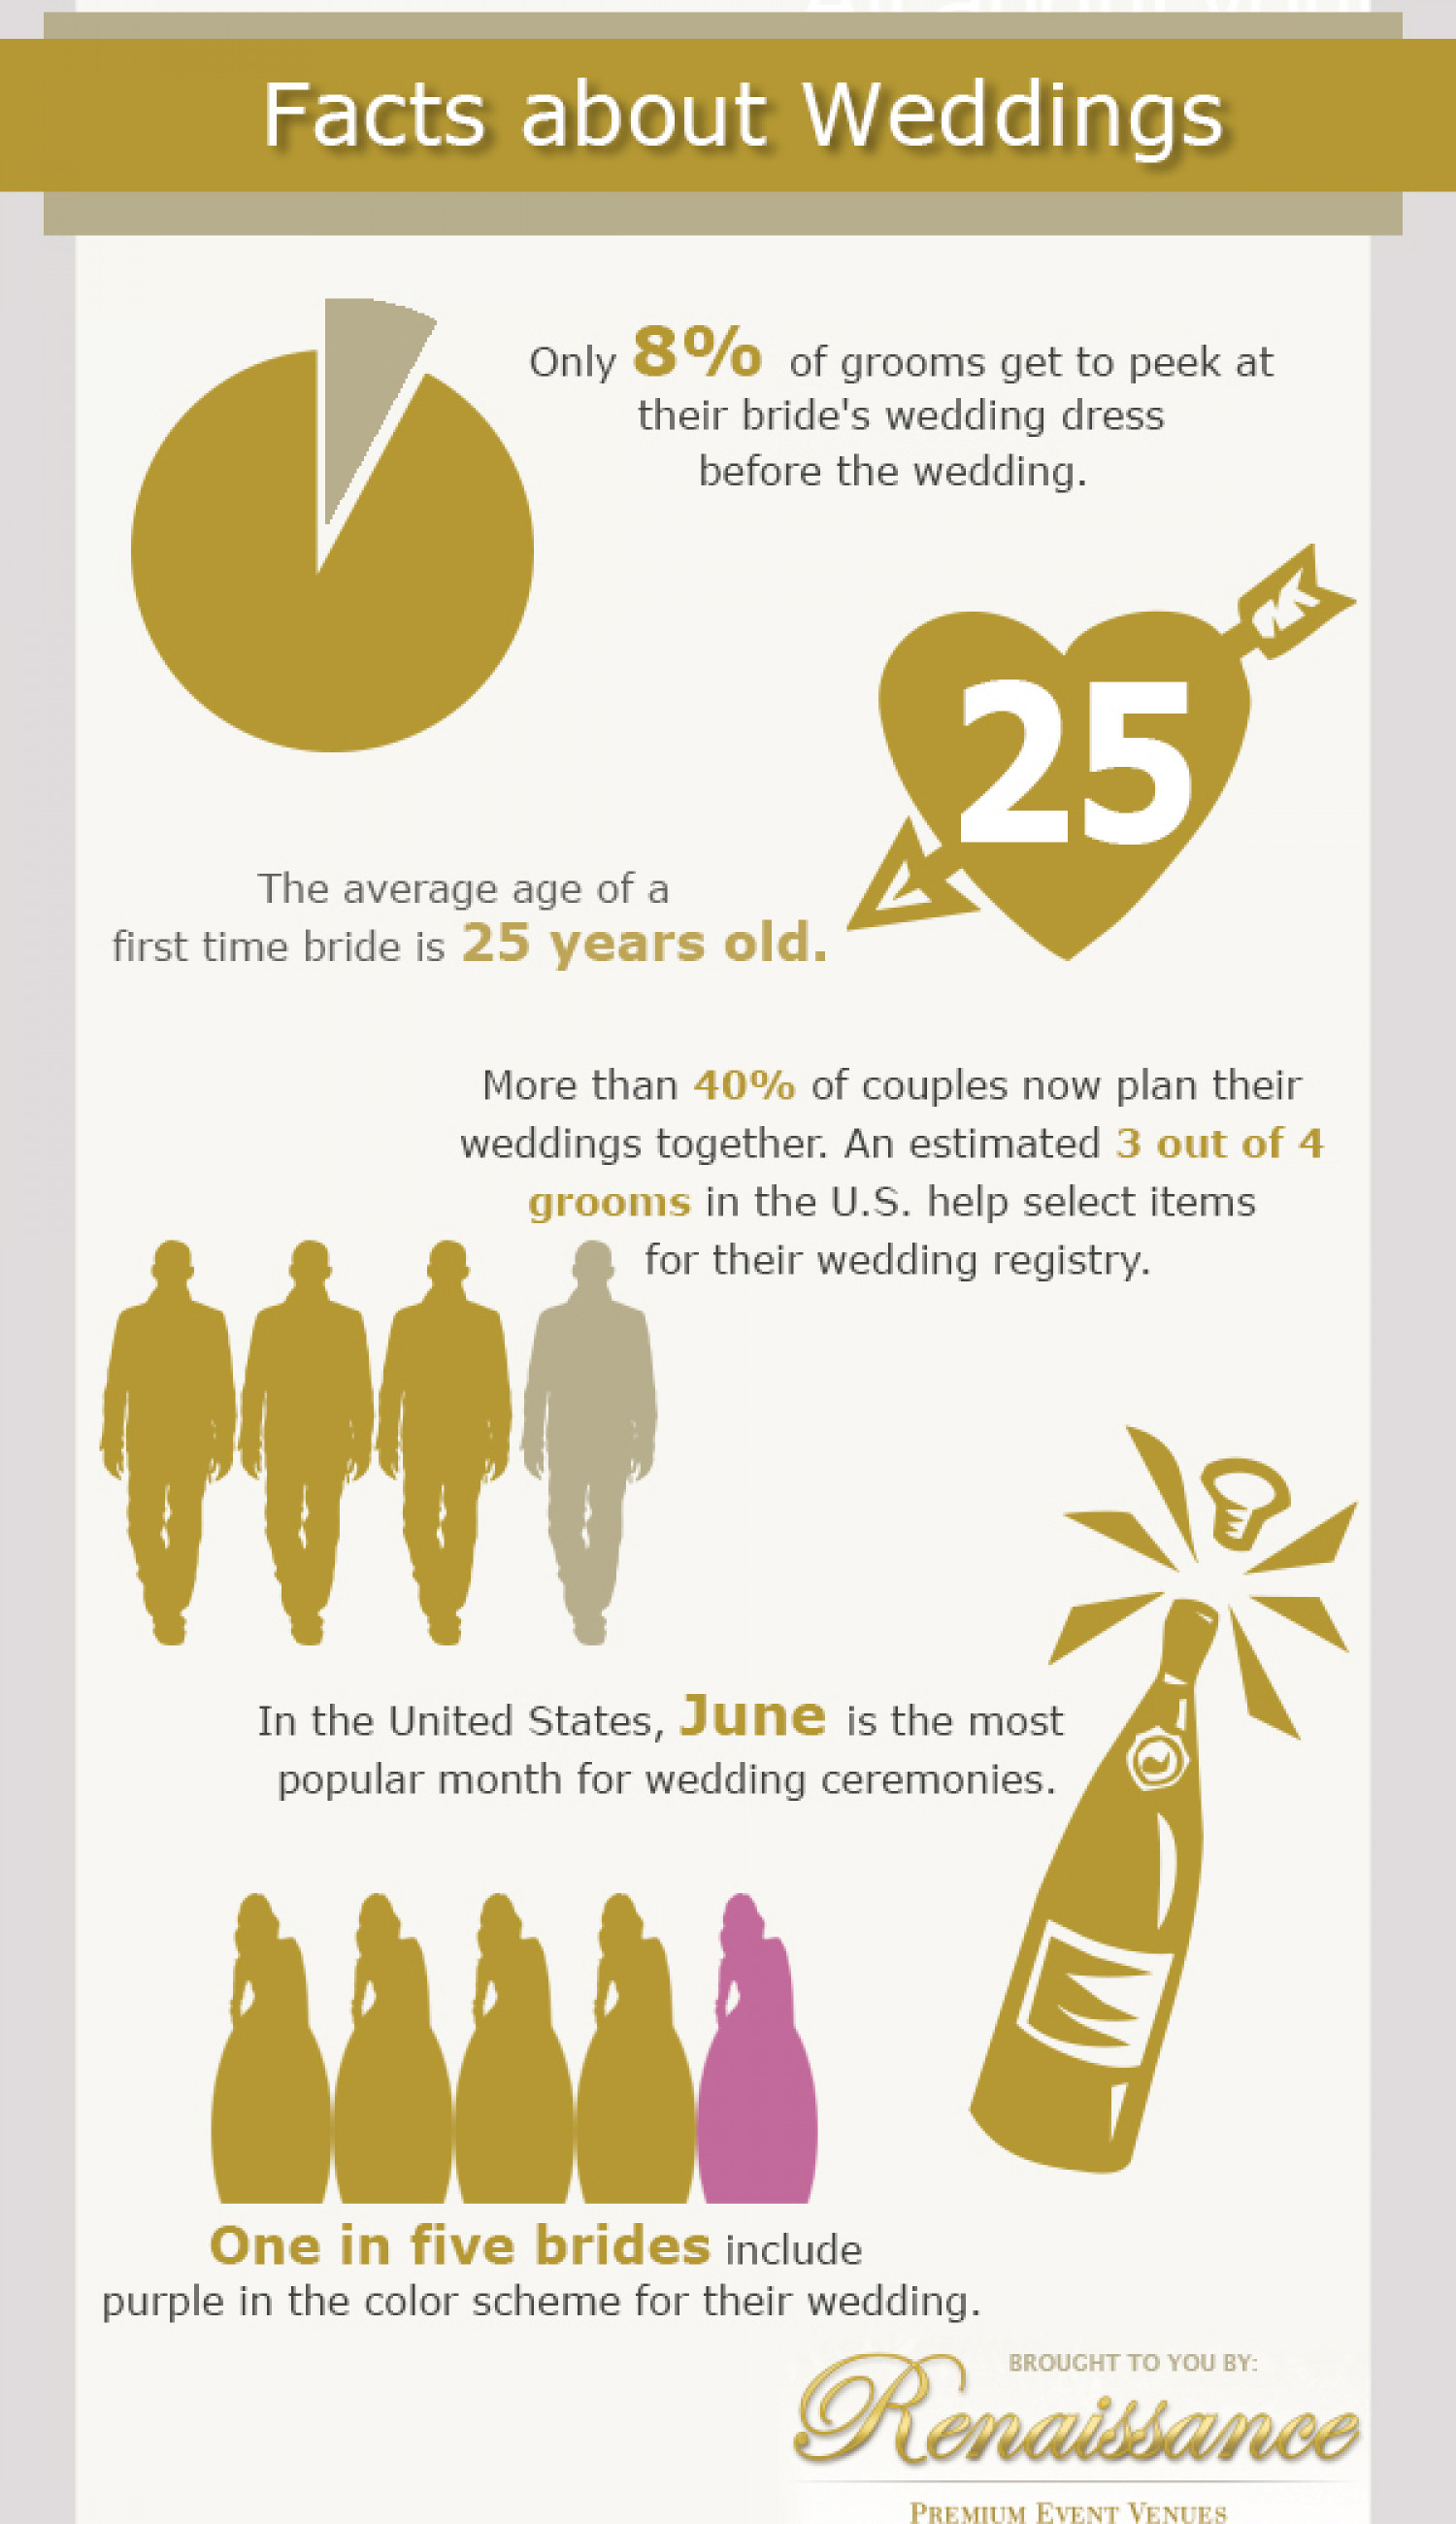 Facts About Weddings Infographic